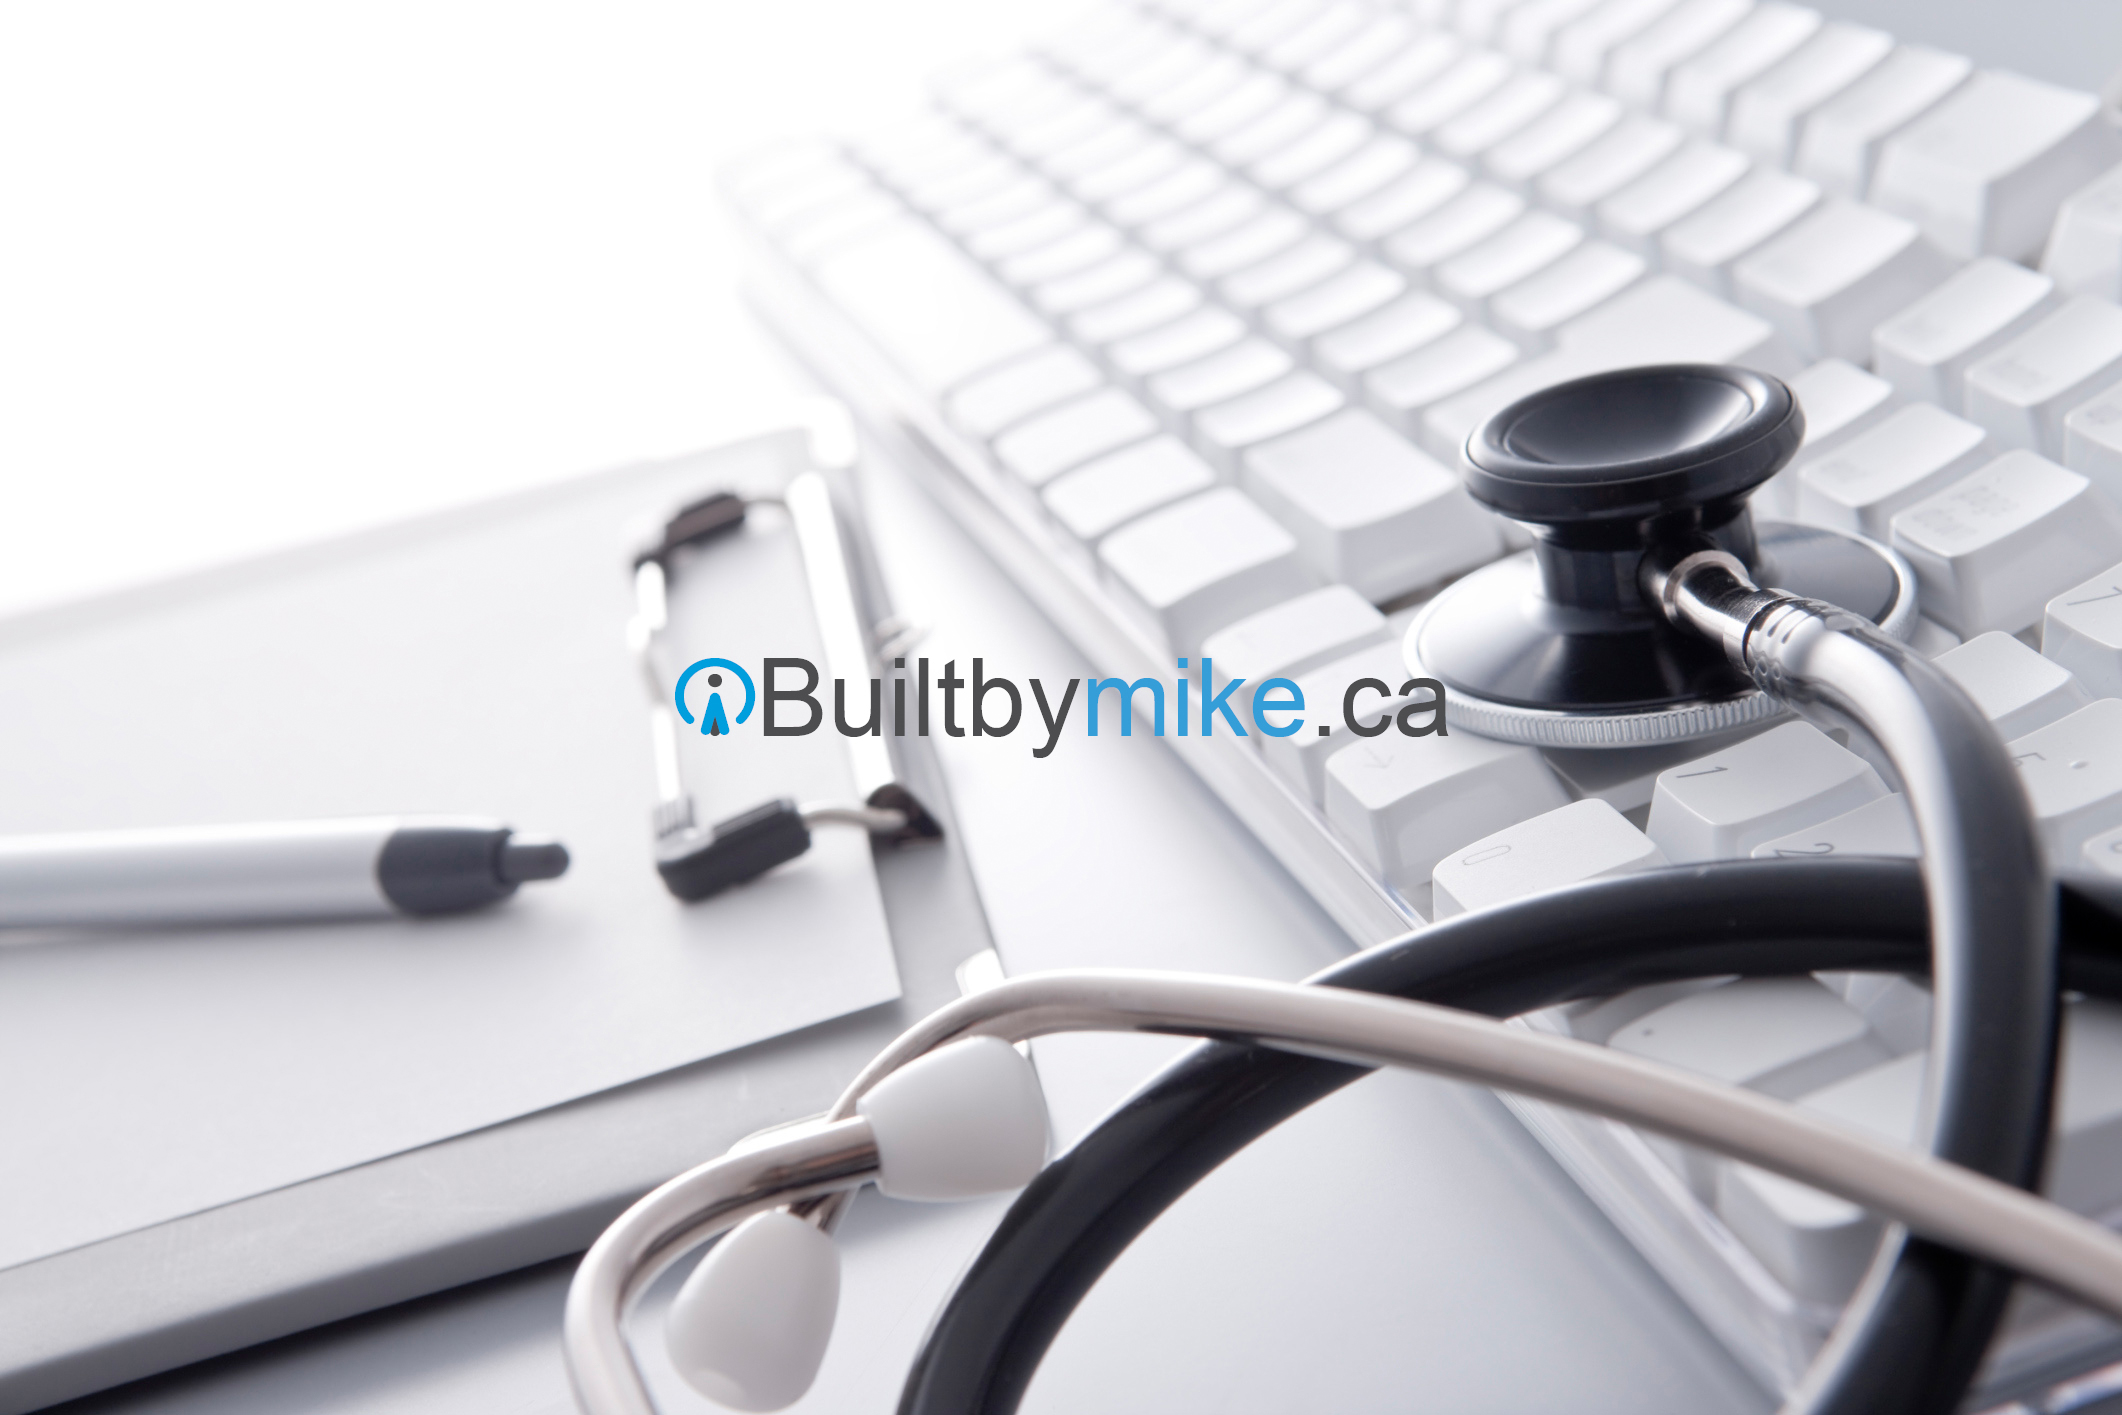 Builtbymike.ca IT Services Home